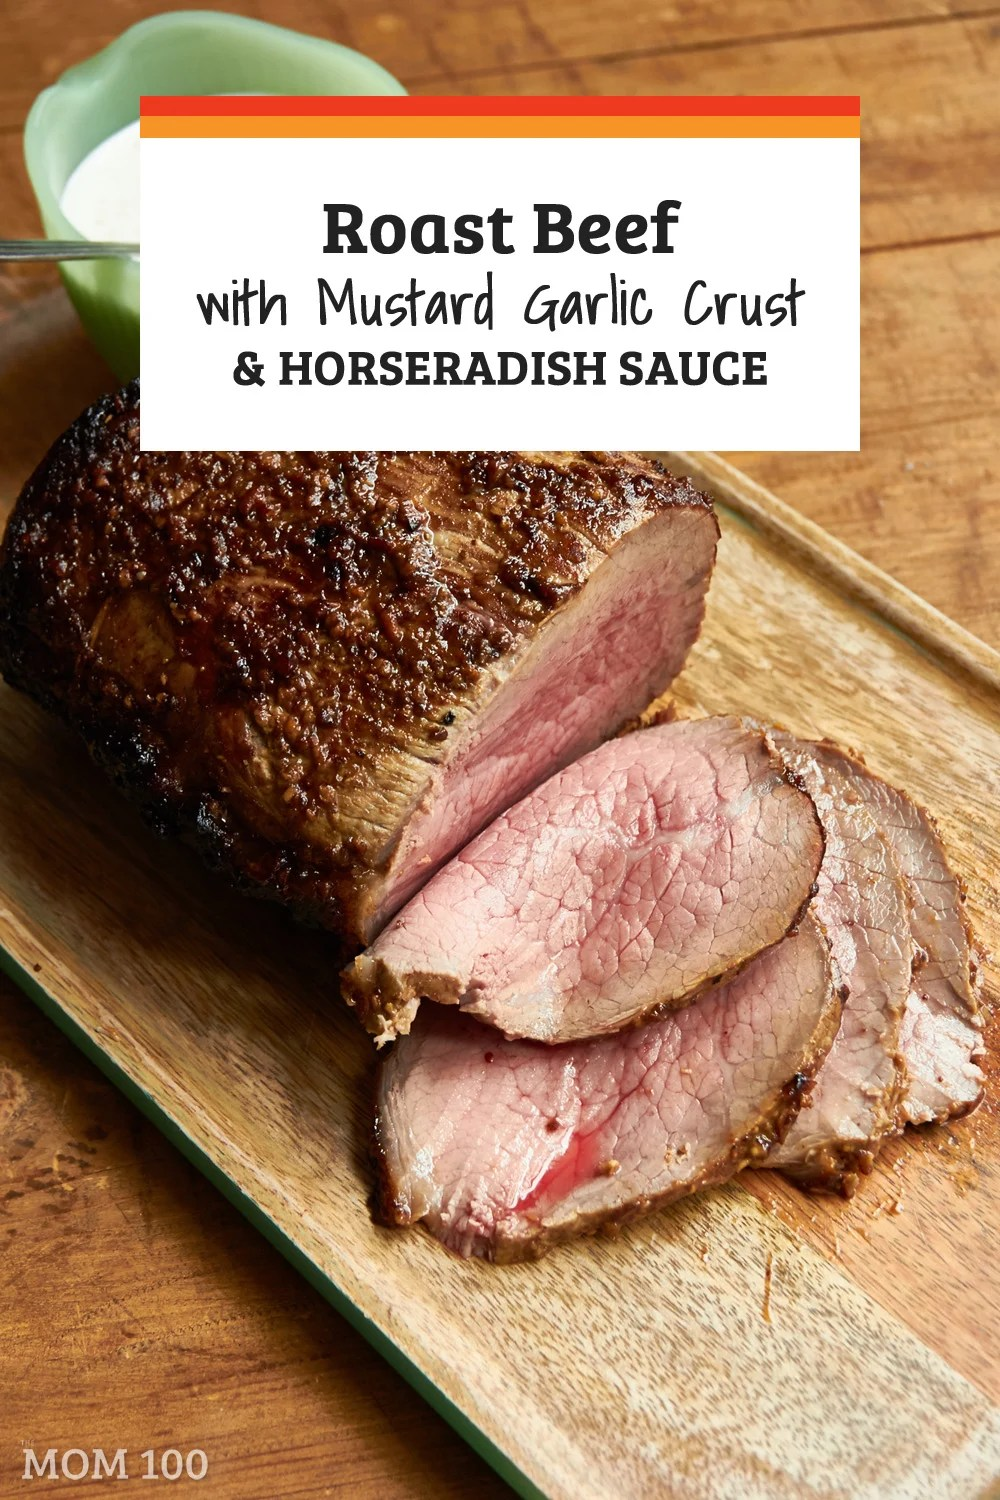 This simple roast beef has a 4-ingredient rub that creates a crusty glaze with wonderful flavor - and your kitchen will smell fantastic!